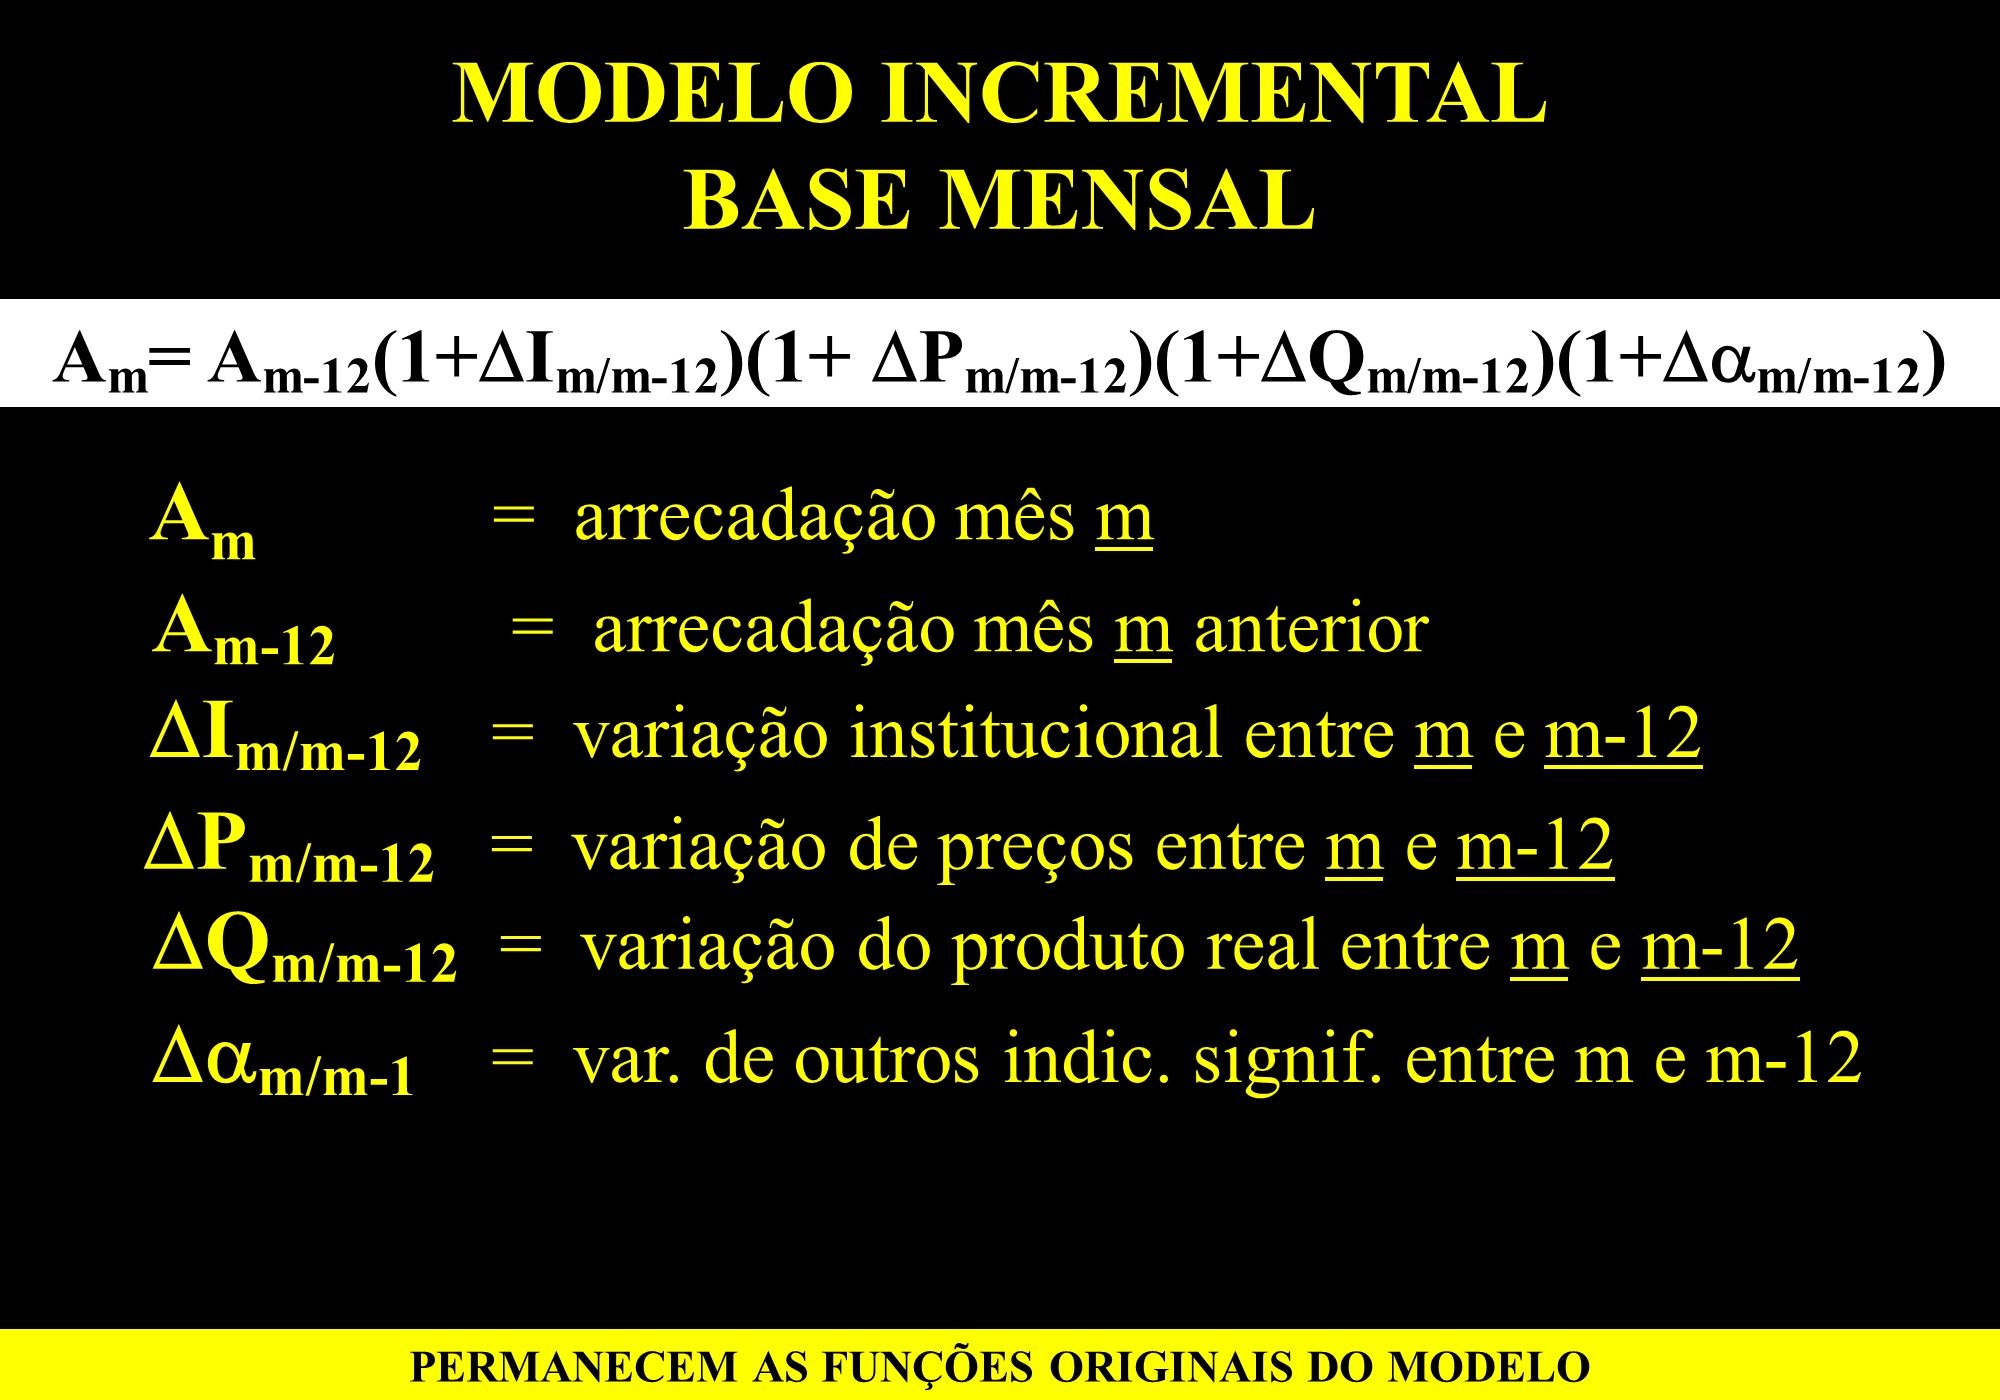 MODELO INCREMENTAL BASE MENSAL